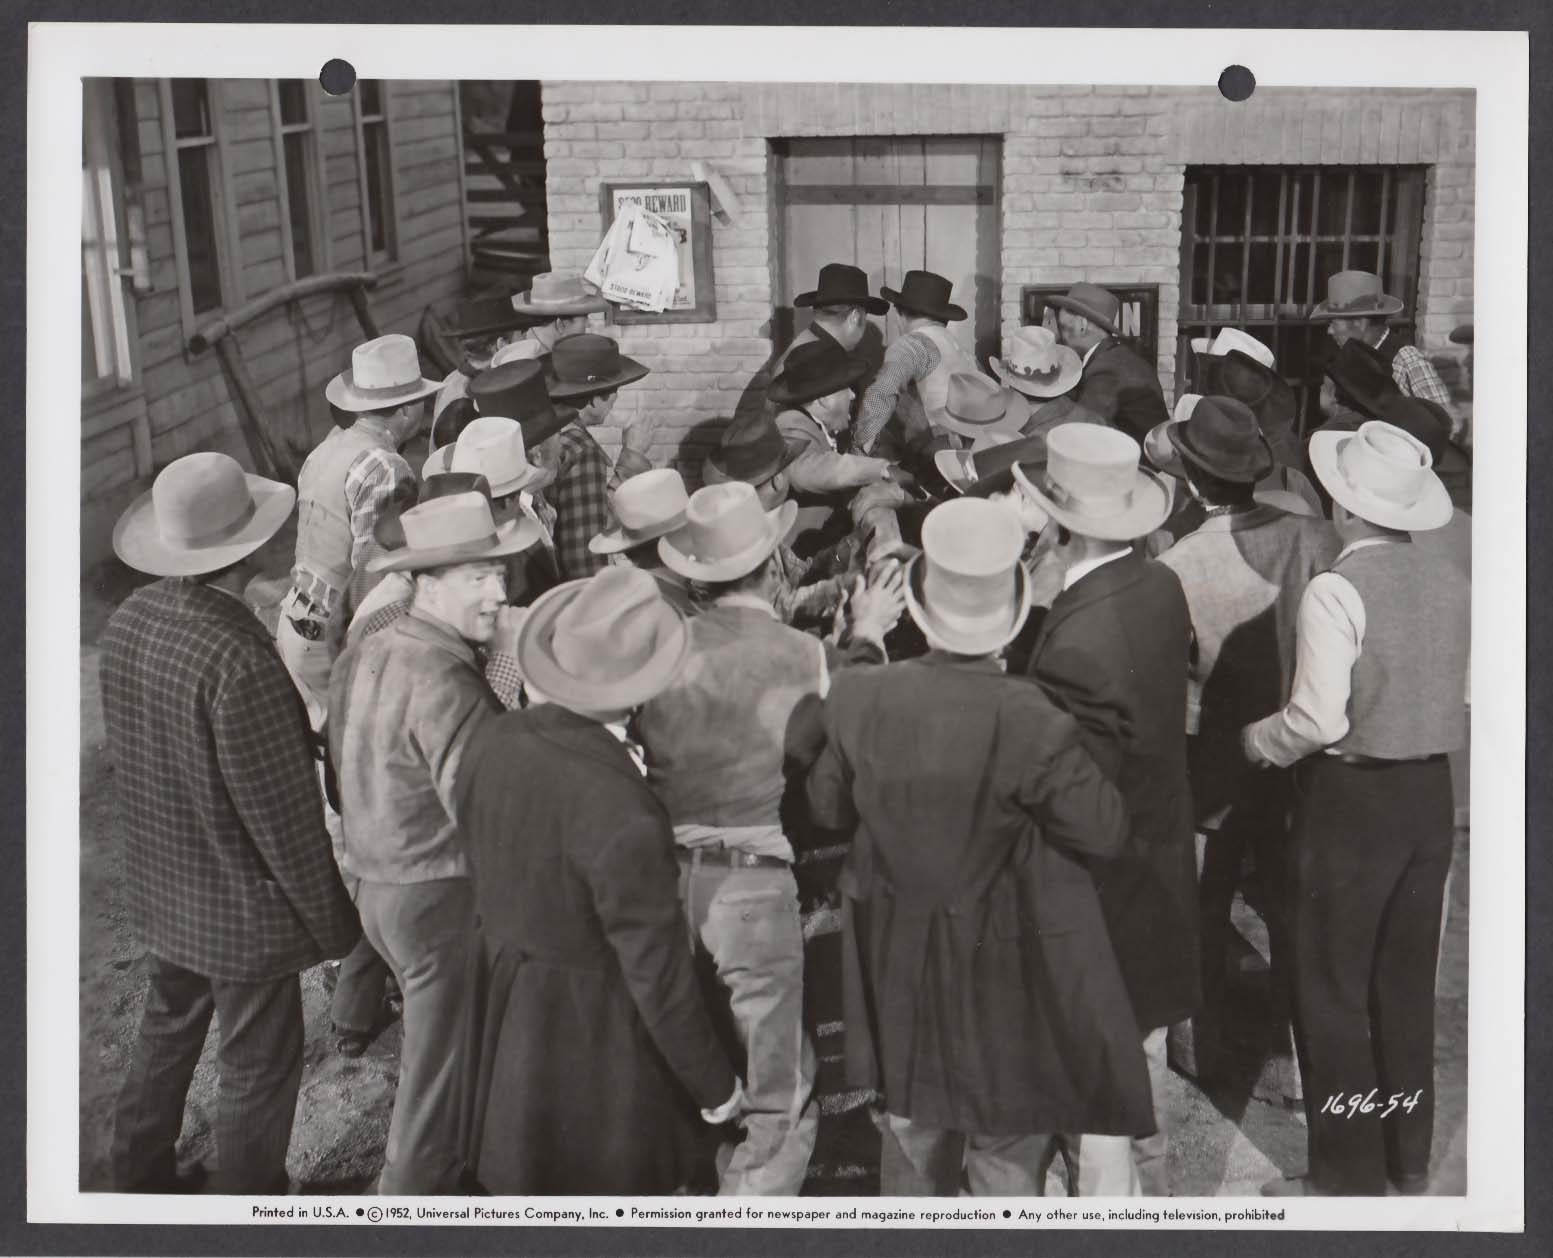 Angry mob scene in Horizons West 8x10 photo 1952